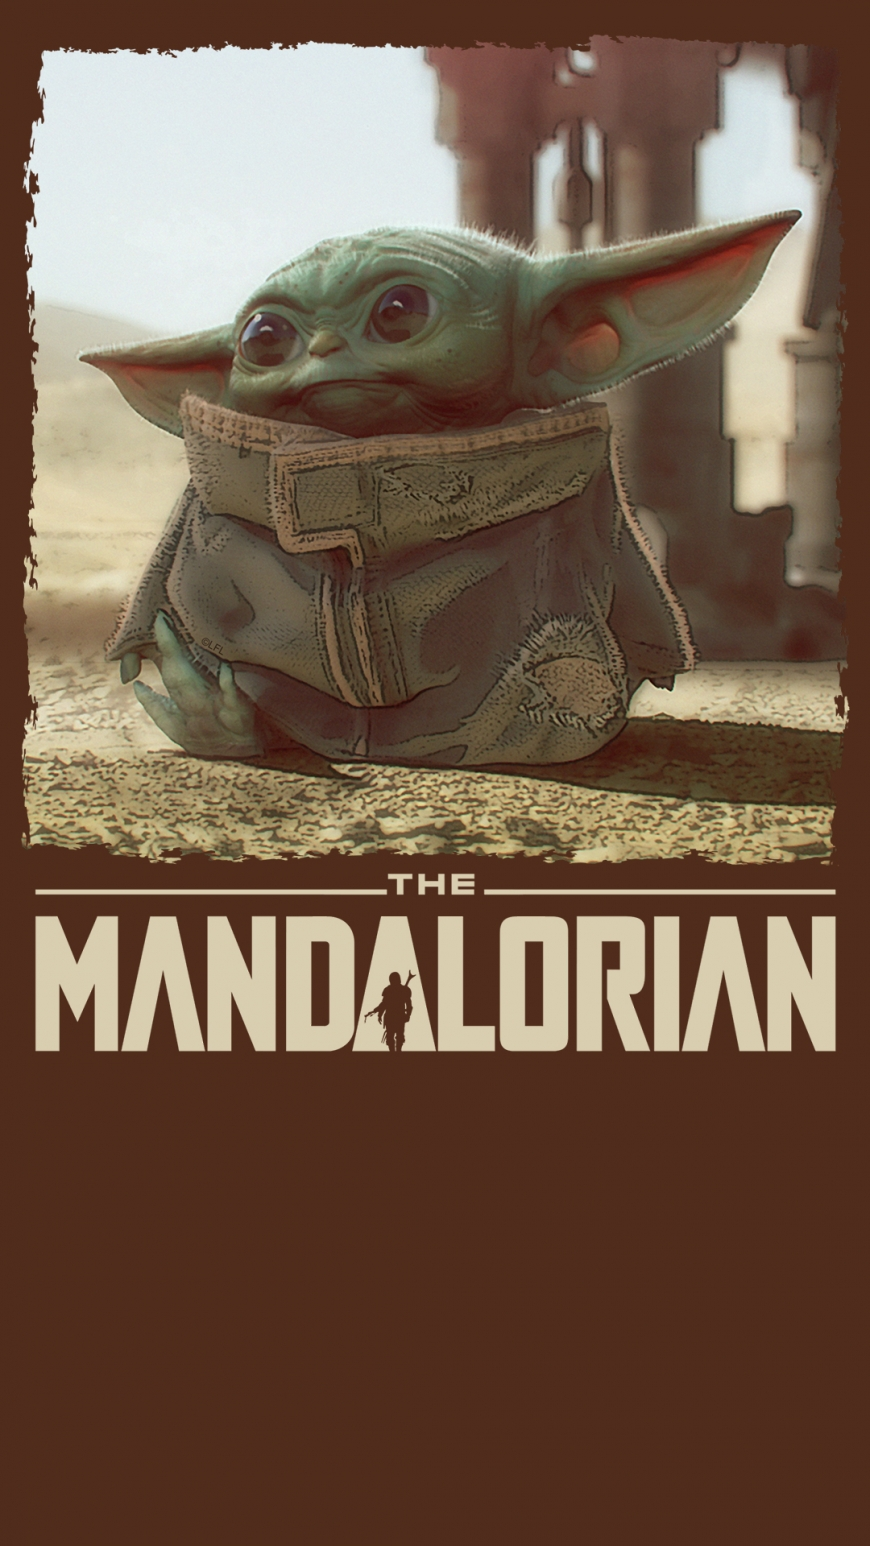 The Mandalorian Baby Yoda wallaper